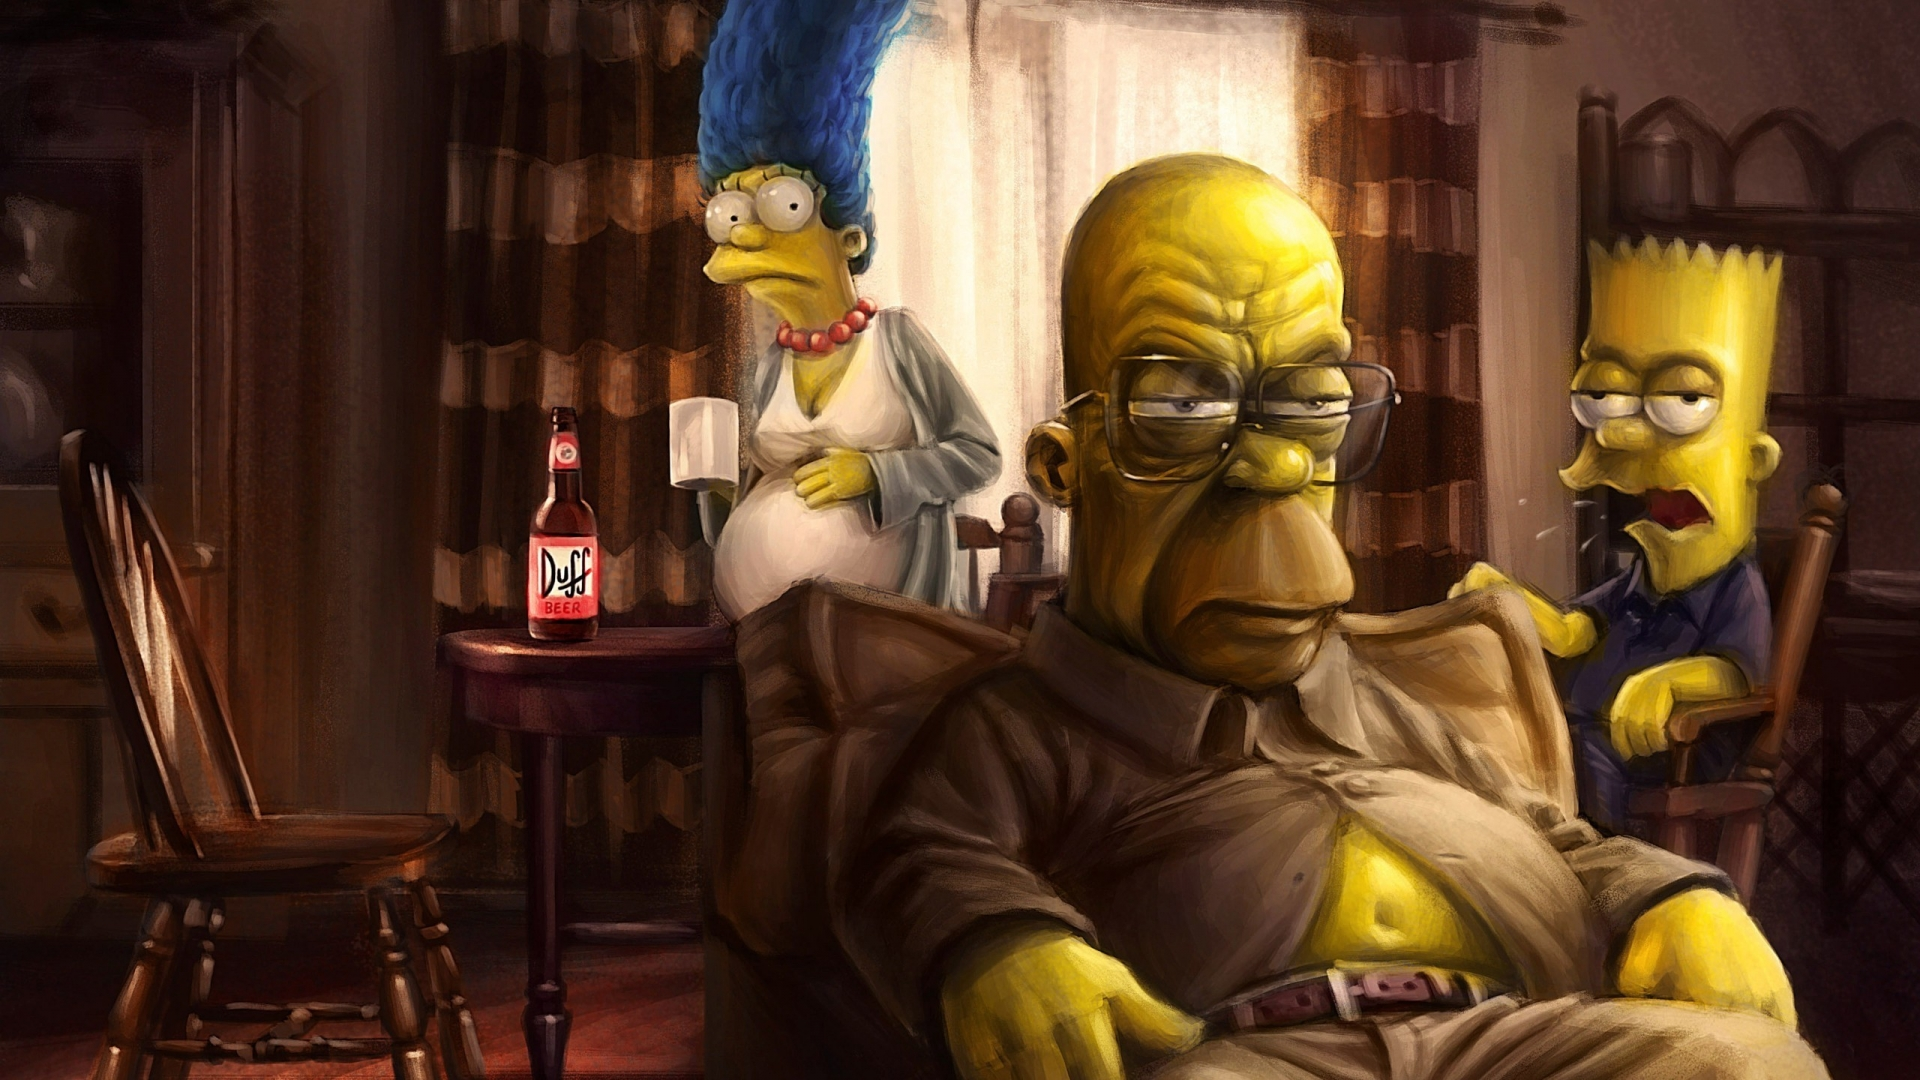 The Simpsons Breaking Bad 1920 X 1080 Hdtv 1080p Wallpaper